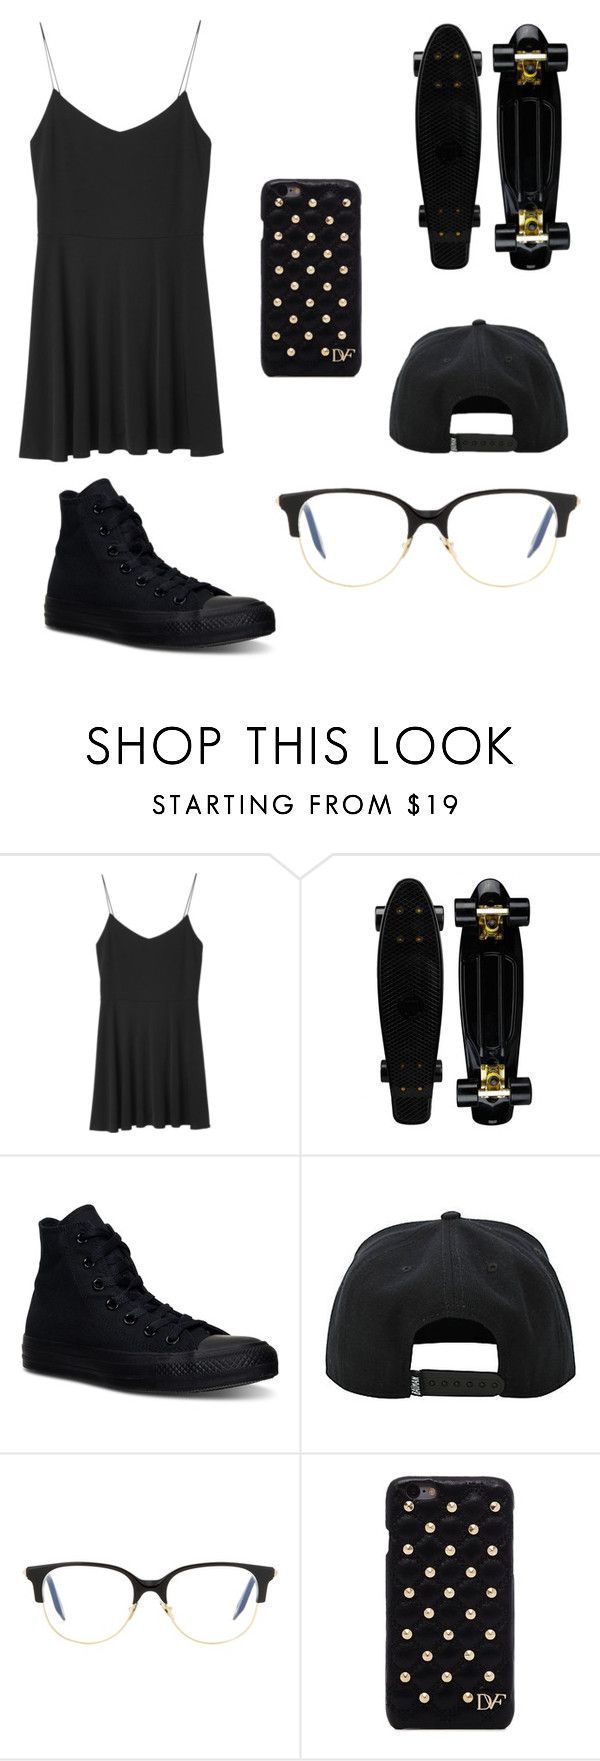 """""""Untitled #153"""" by mxpickles ❤ liked on Polyvore featuring Monki, Converse, Victoria Beckham and Diane Von Furstenberg"""